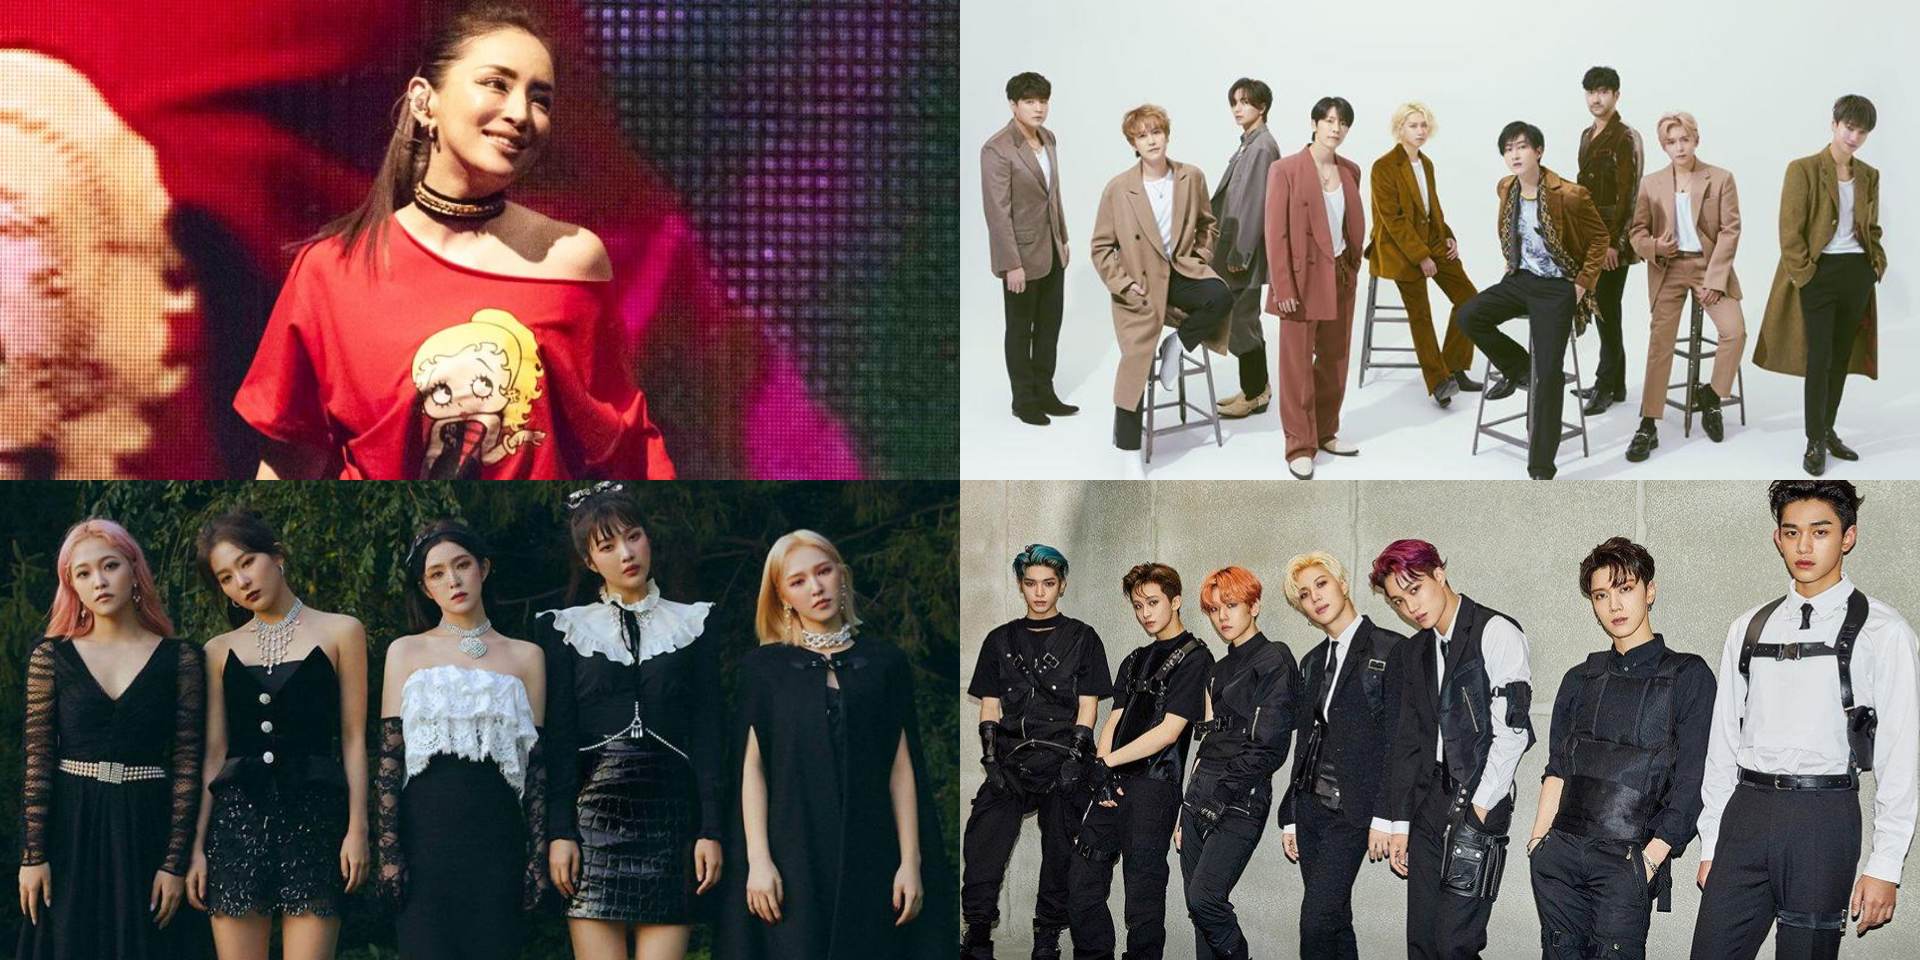 Japanese concert series a-nation announces online show lineup: Super Junior, Ayumi Hamasaki, Red Velvet, and more confirmed